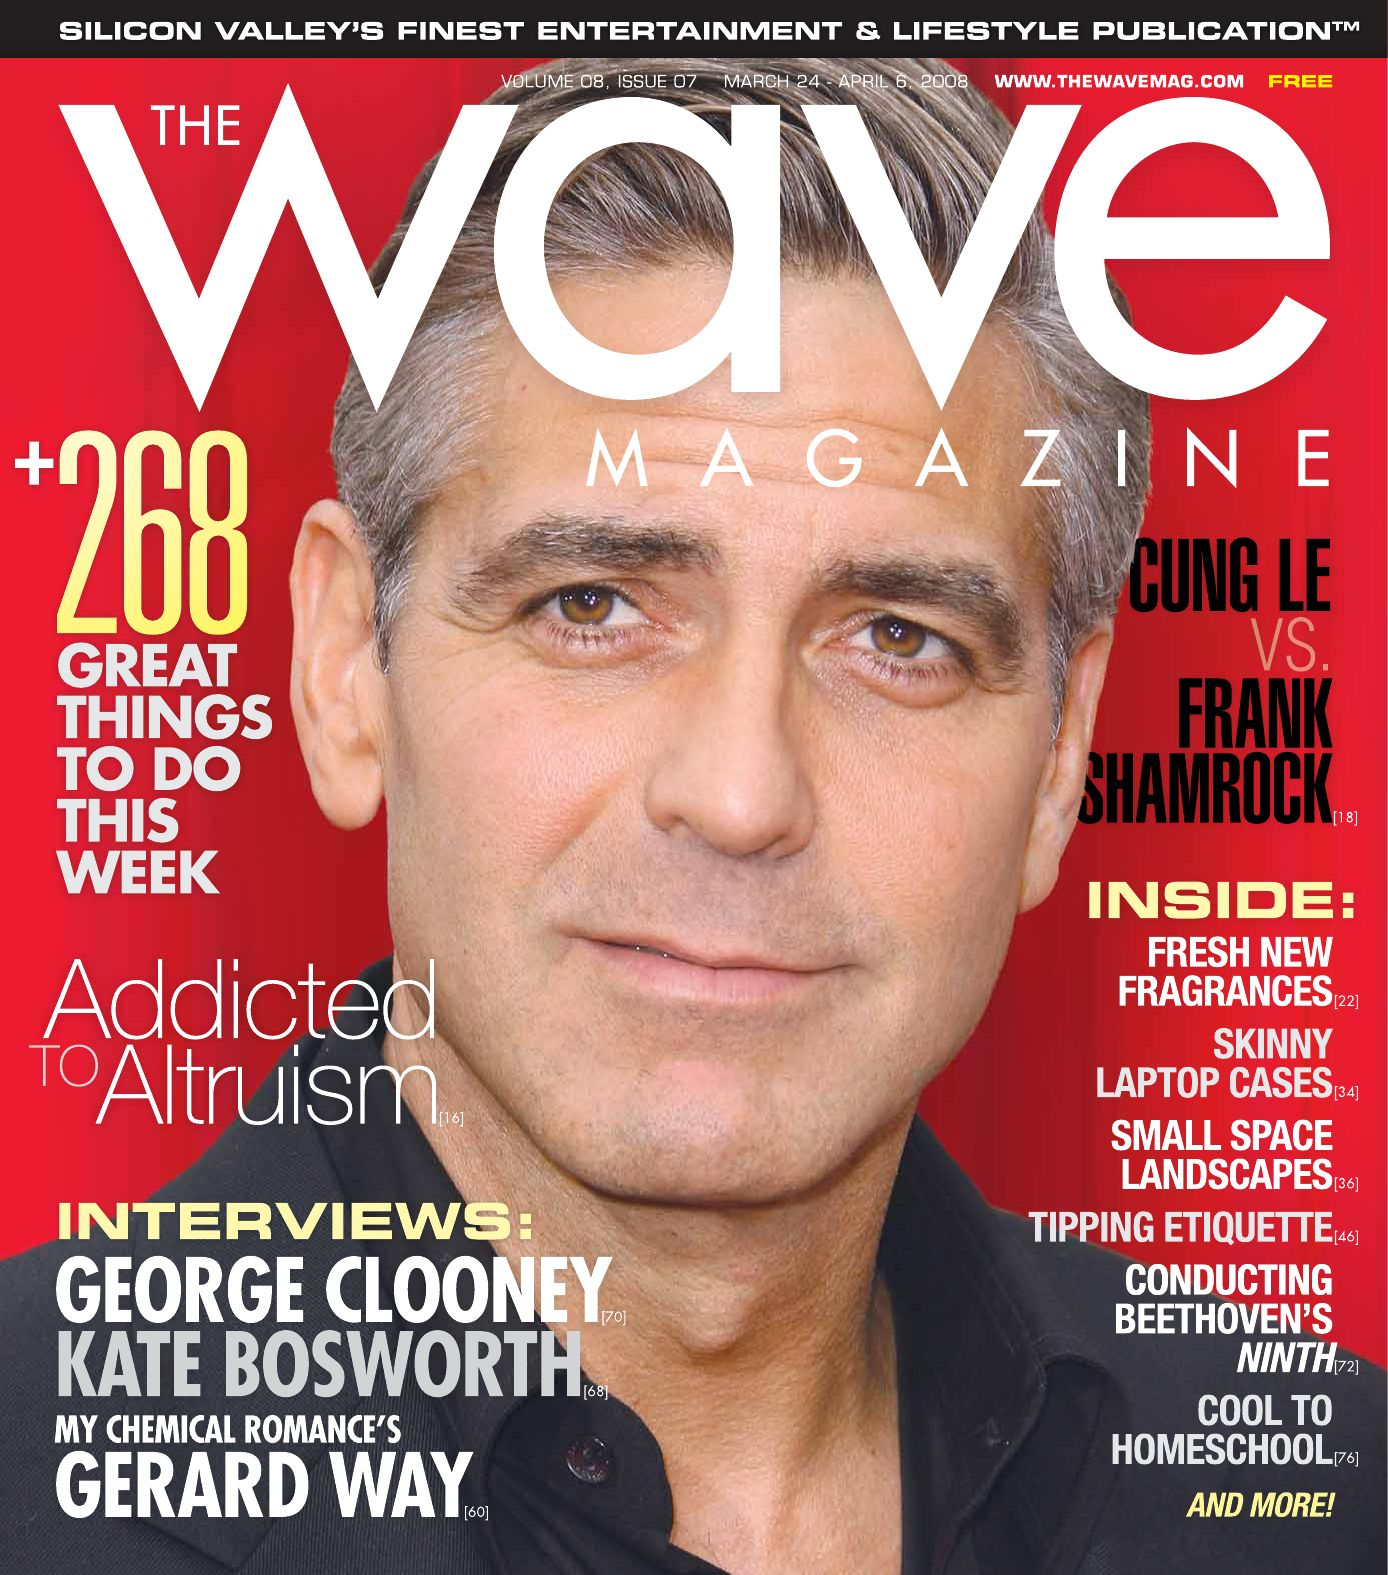 ea9dcc4f24 The Wave Magazine - Volume 08, Issue 07: March 26 - April 8, 2008 by The  Wave Magazine - issuu